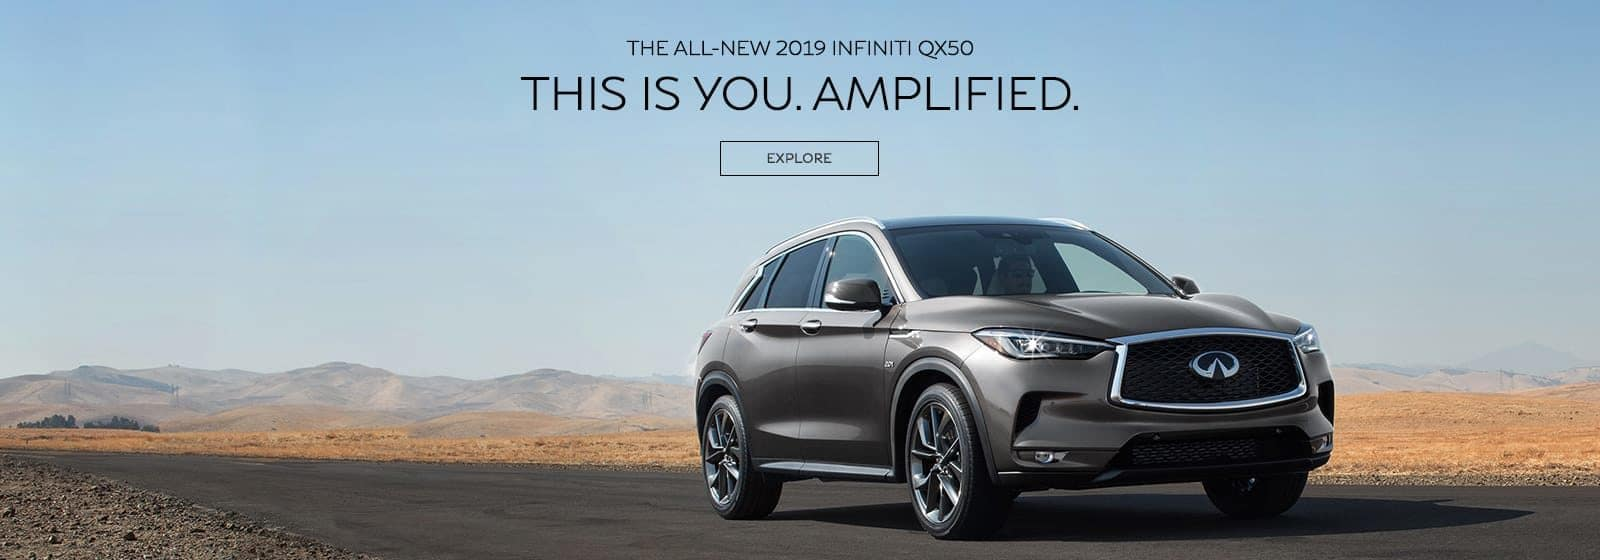 INF_QX50_Lifestyle_Tier3_1600x560-optimized (1)